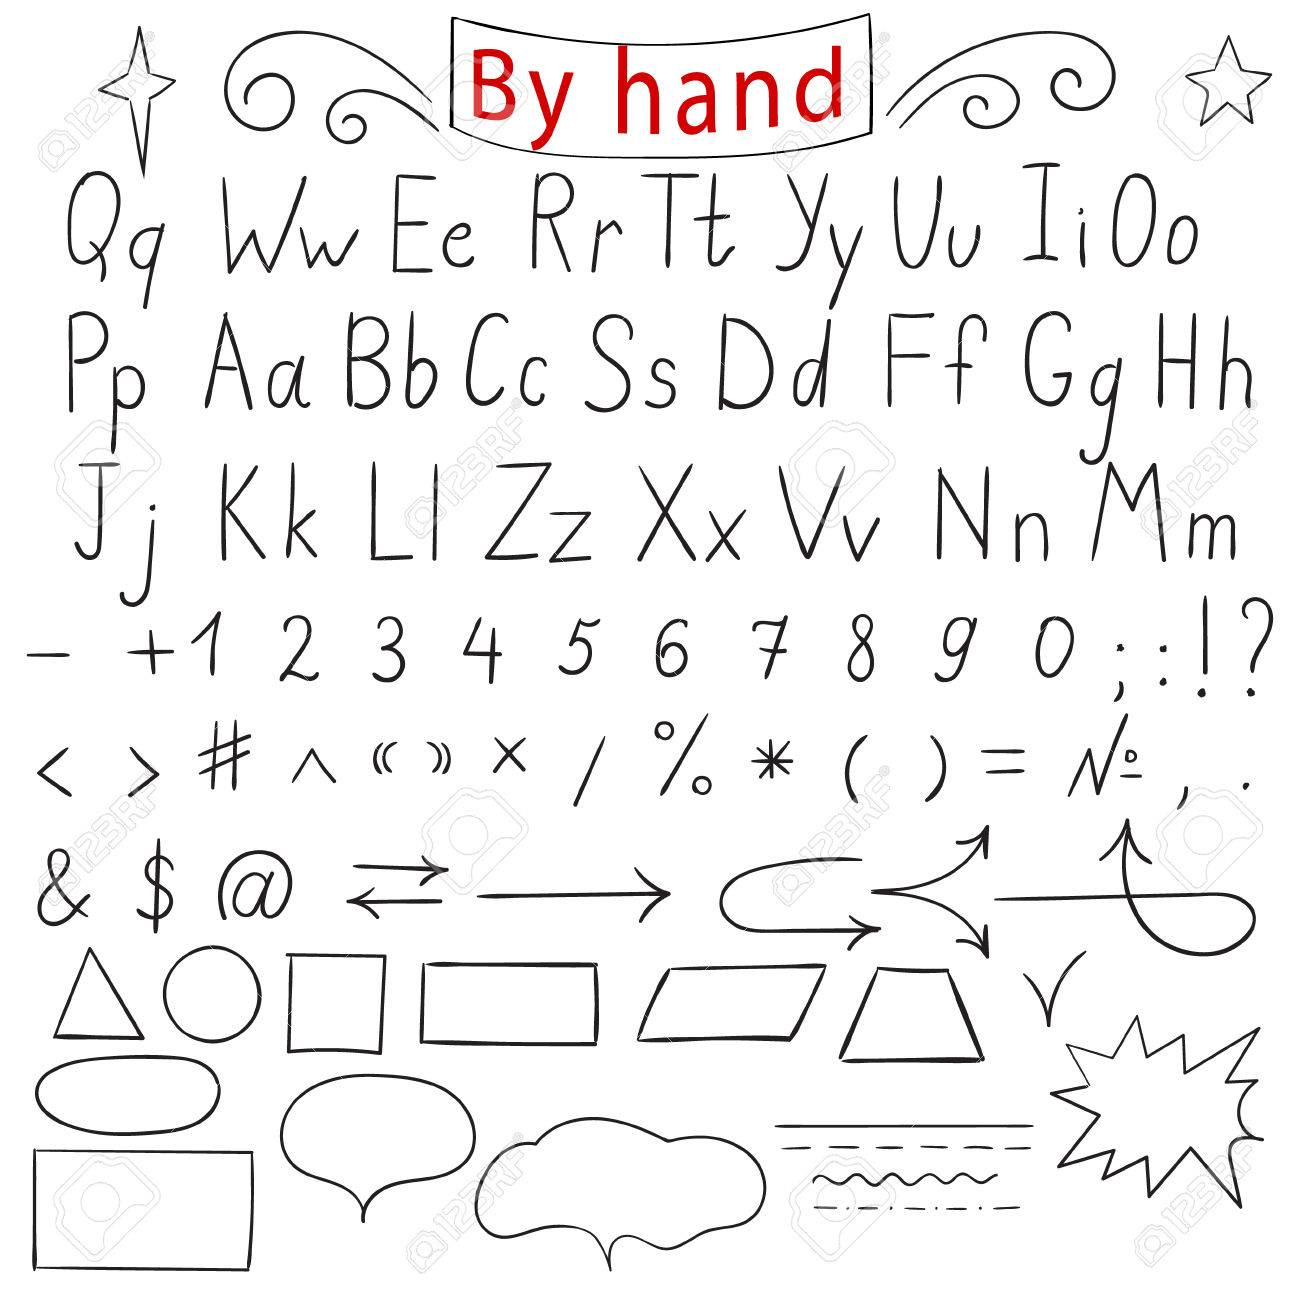 Handwritten Letters Number Characters Shapes English Alphabet